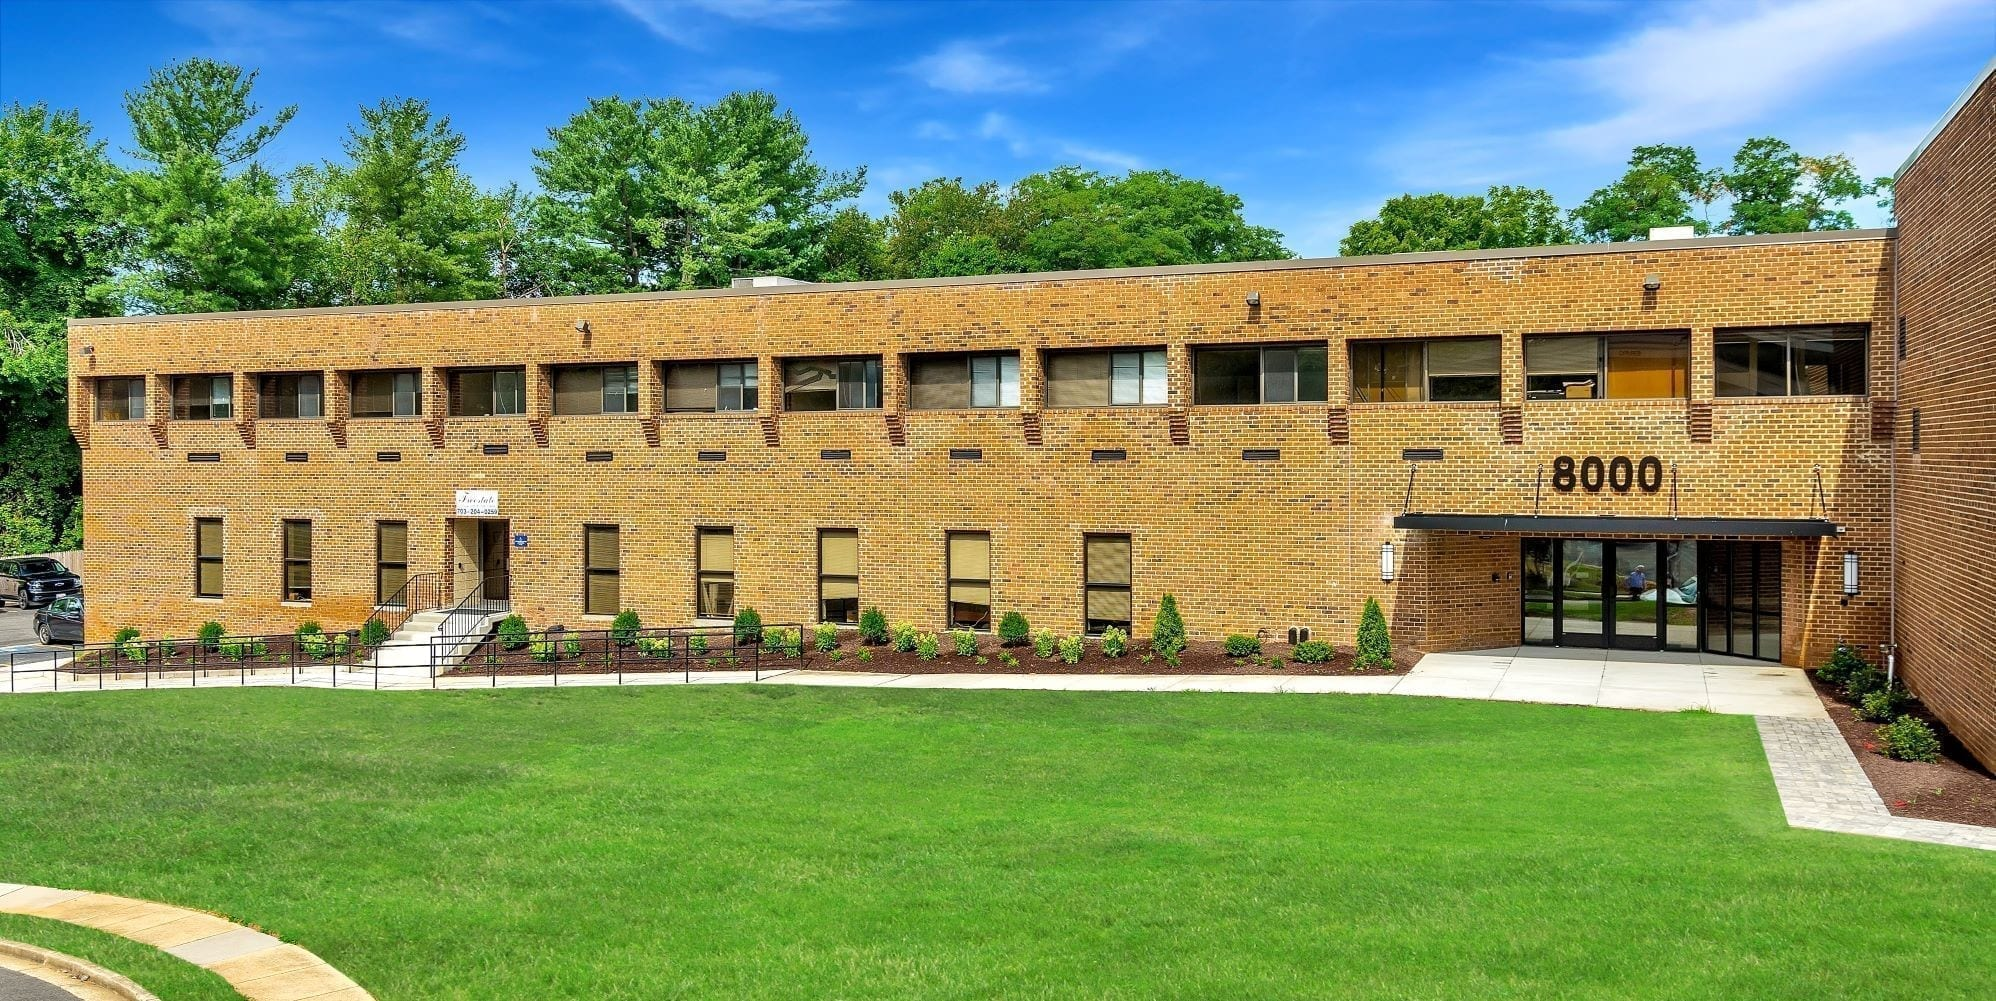 Edge Brokers Two Leases Totaling Nearly 30,000 SF Of Space At 8000 Forbes Place In Springfield, Virginia